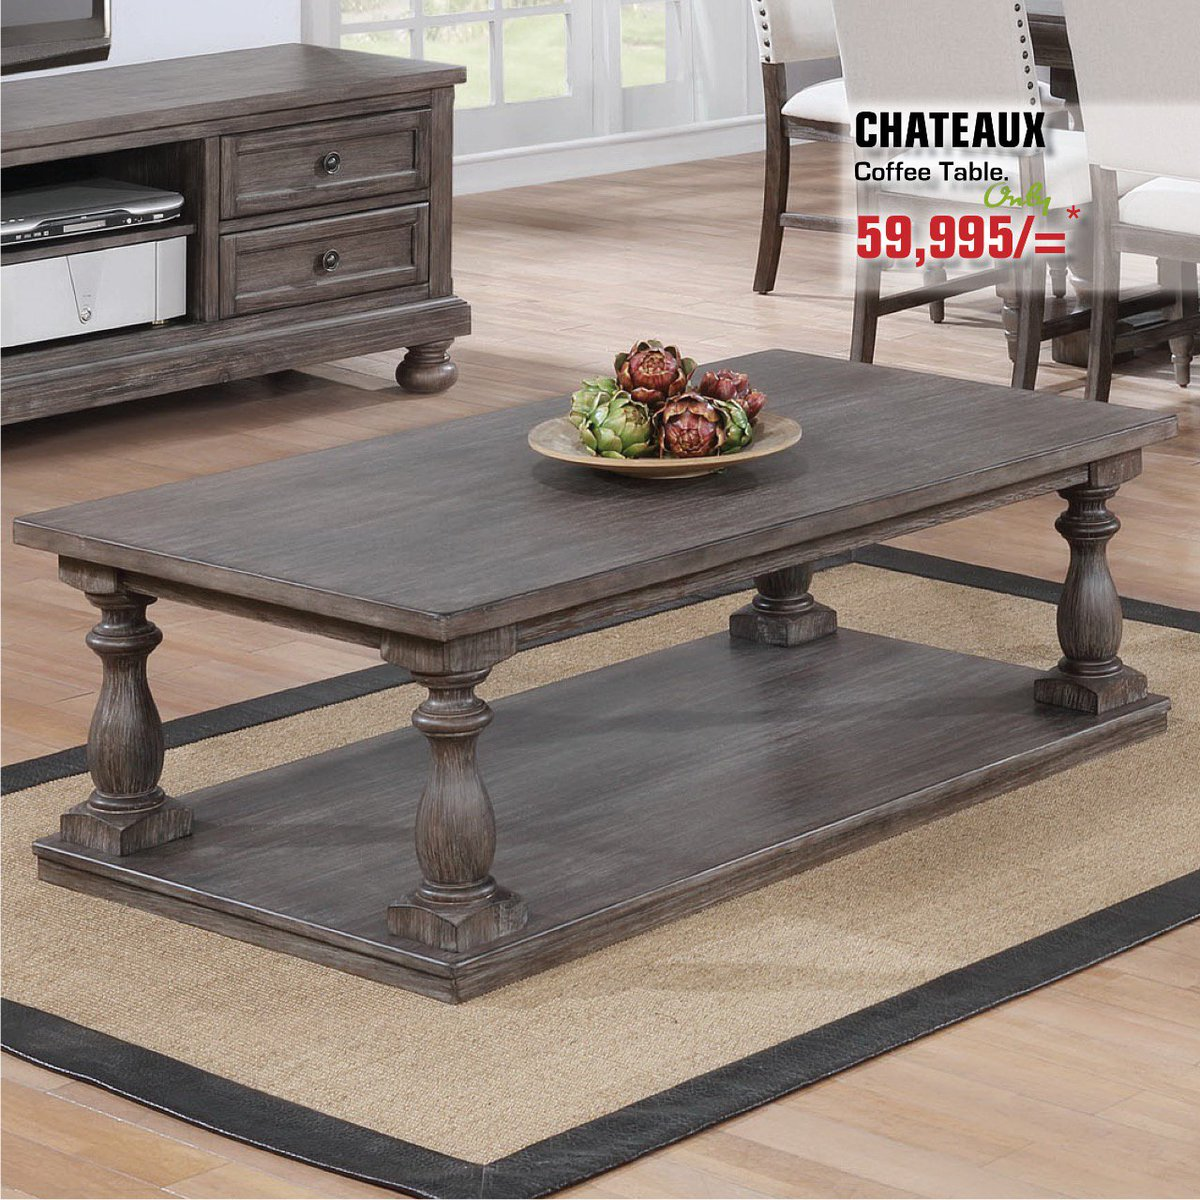 Furniture Palace Ltd On Twitter Let Your Coffee Table Speak Volumes About Your Awesome Taste In Design And The Finer Things In Life Coffeetables Centretables Livingrooms Furniturepalacekenya Https T Co Ebgnktg4gv